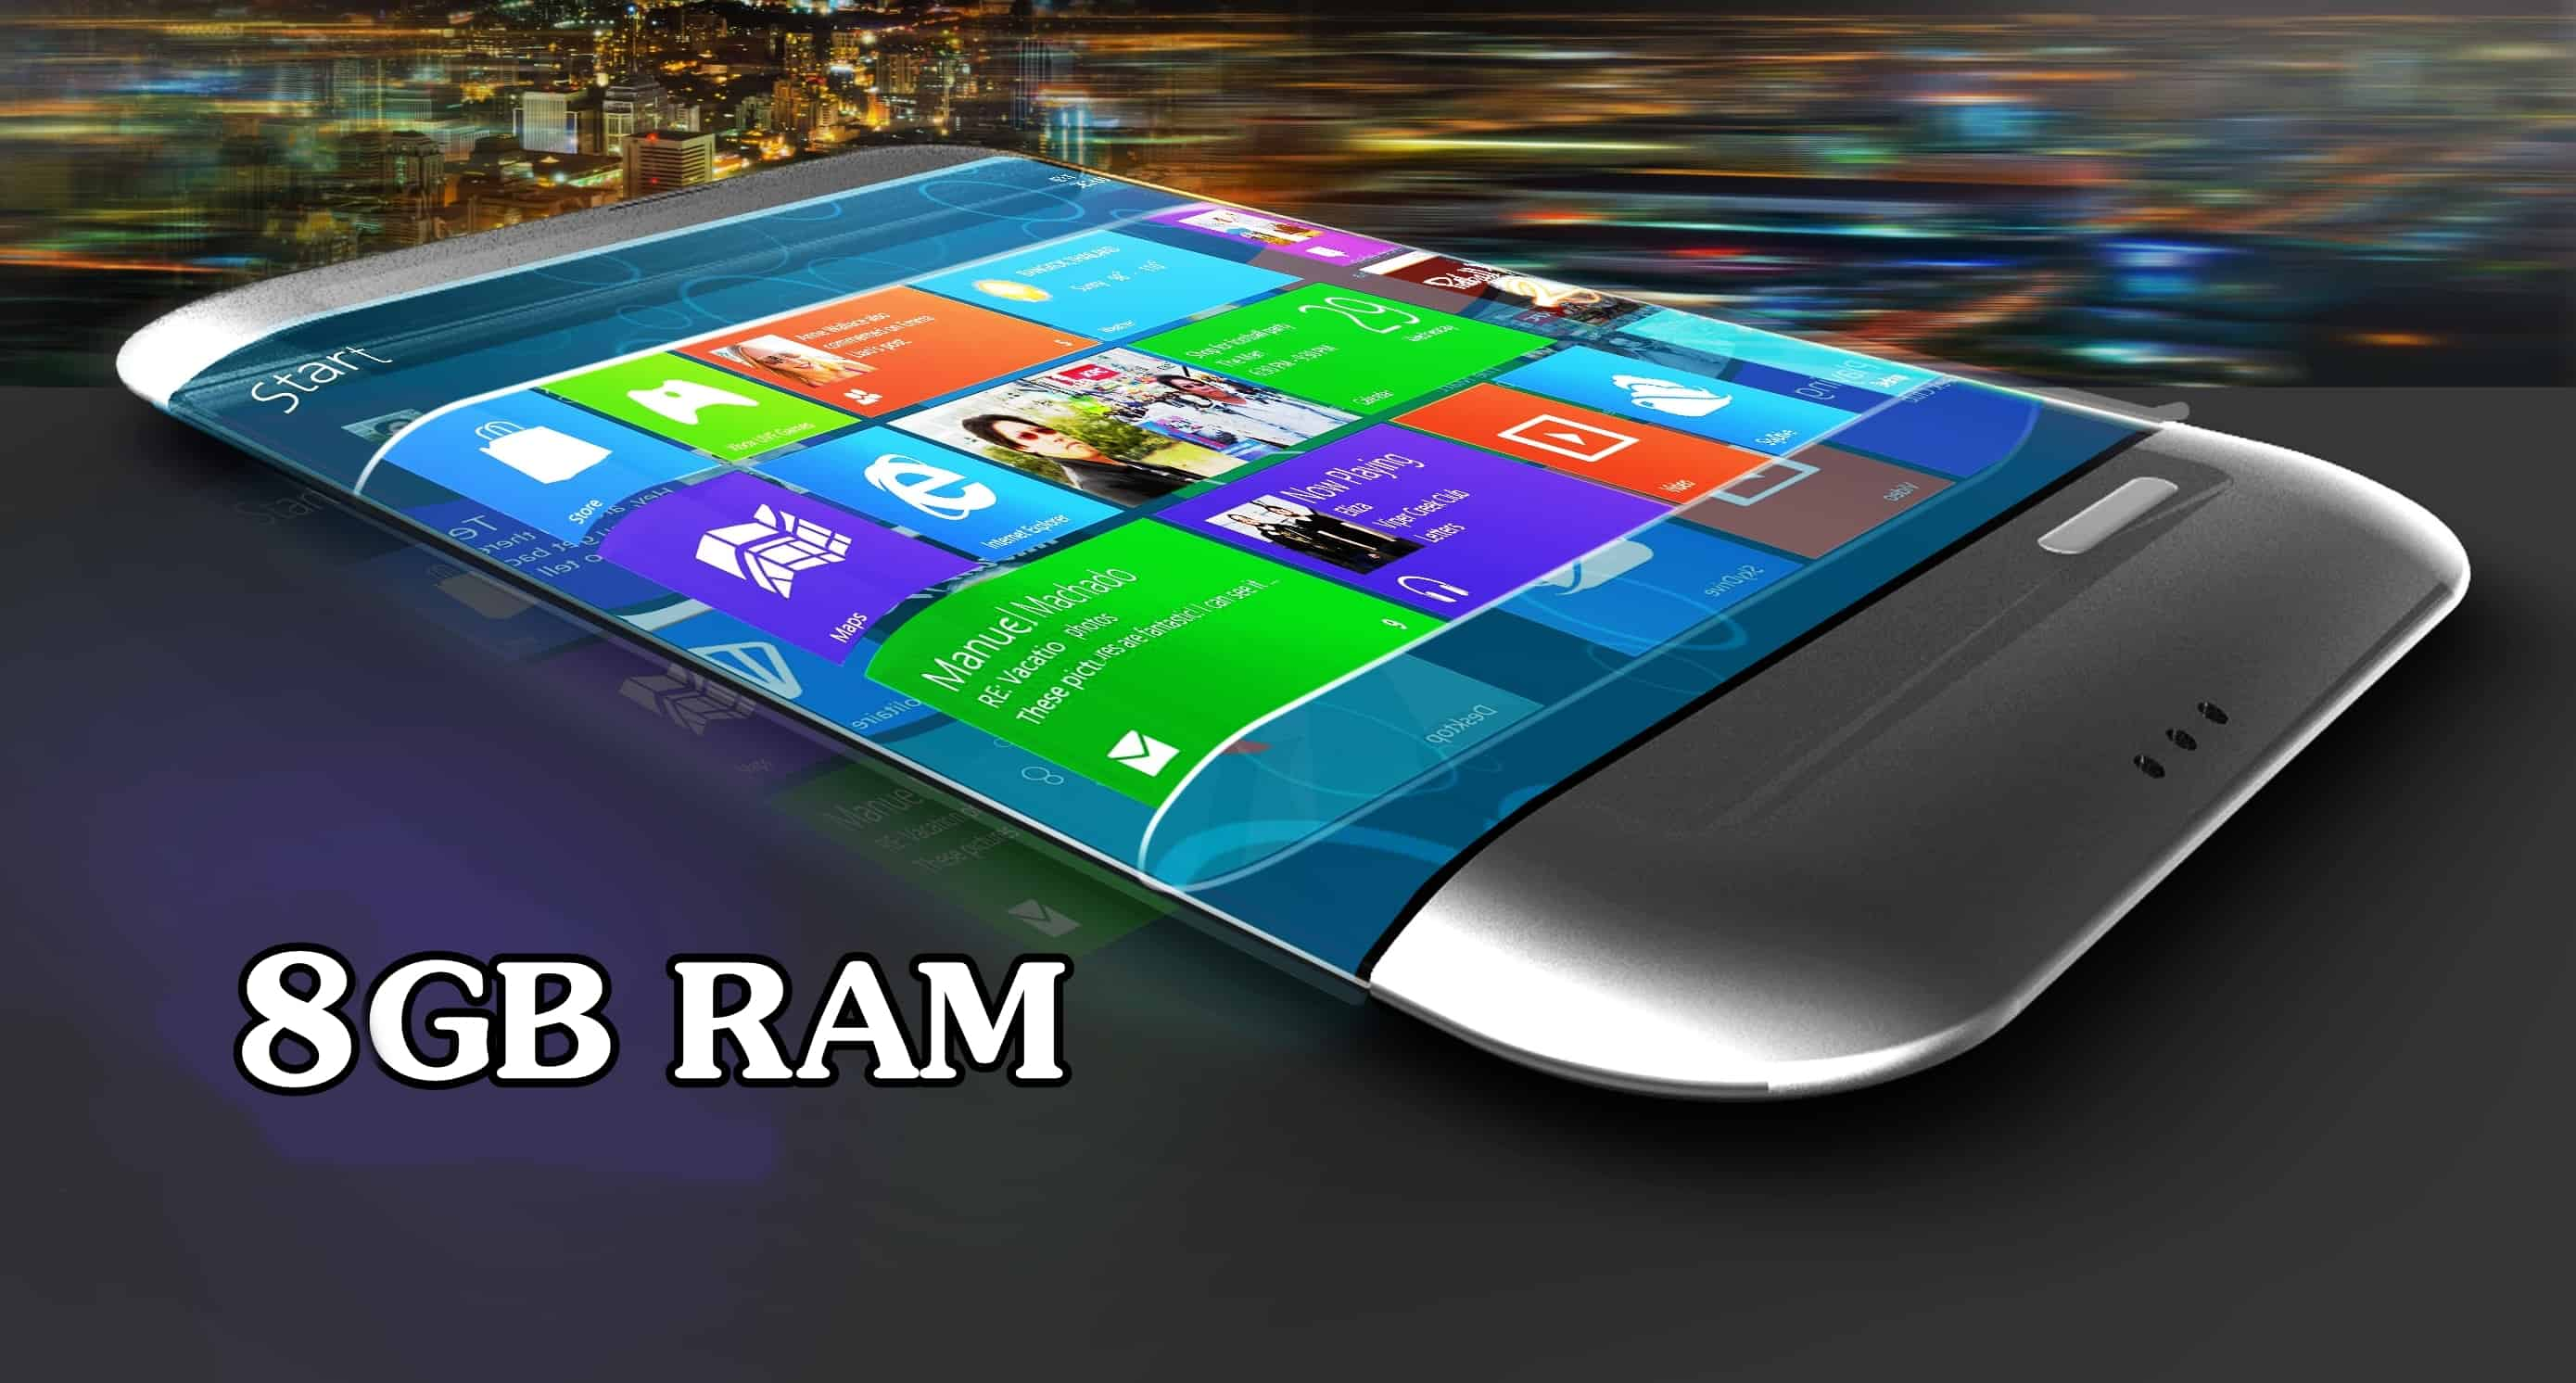 8GB RAM smartphone is an upcoming disaster?